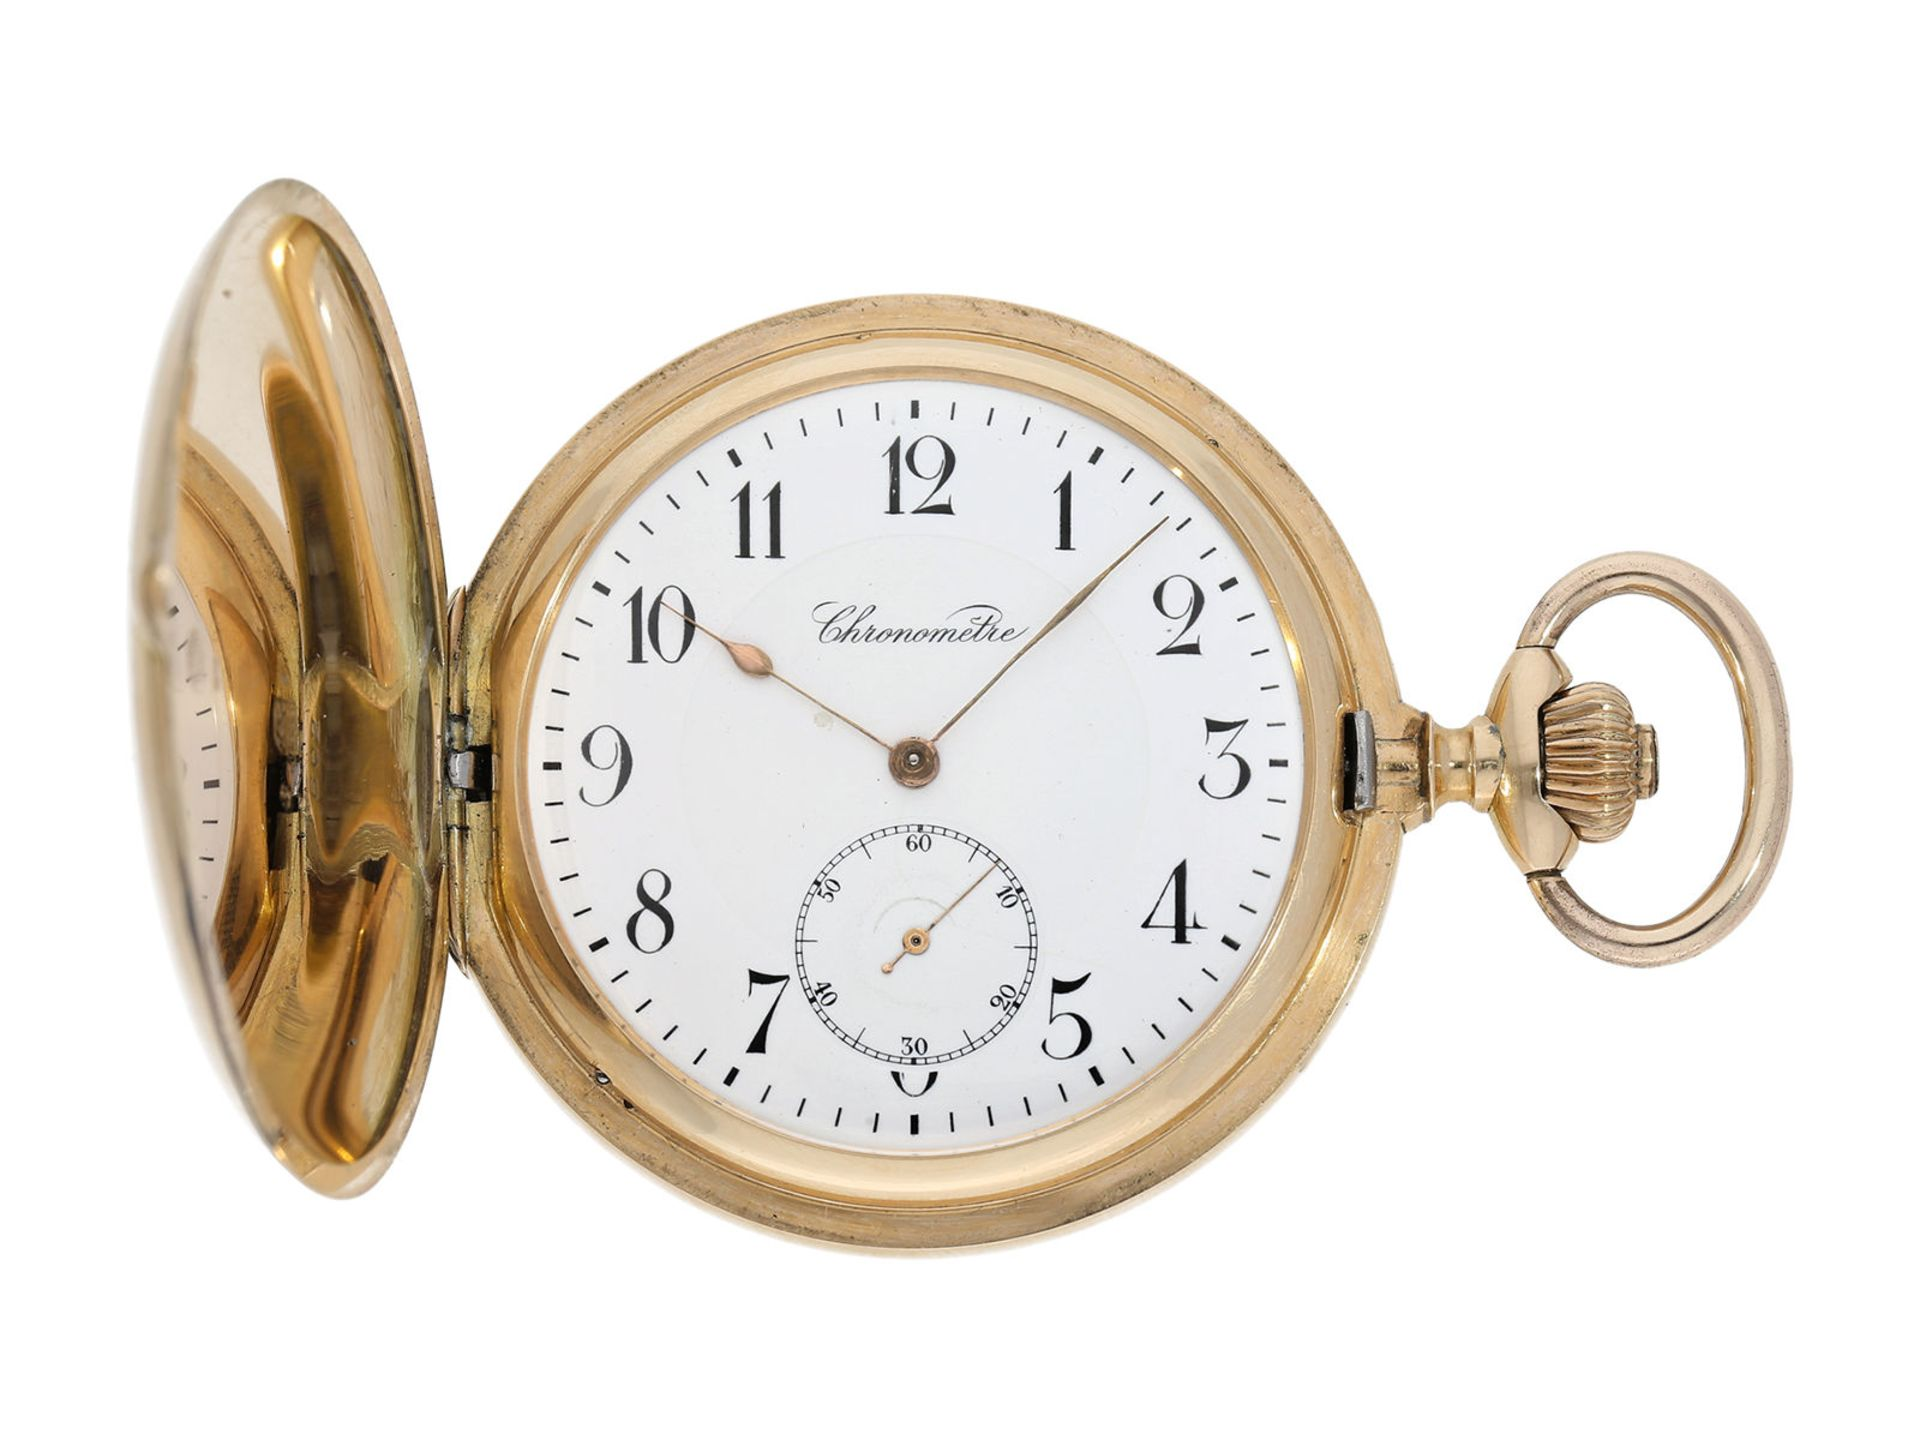 Pocket watch: especially heavy Swiss gold hunting case watch with chronometer escapement, ca.